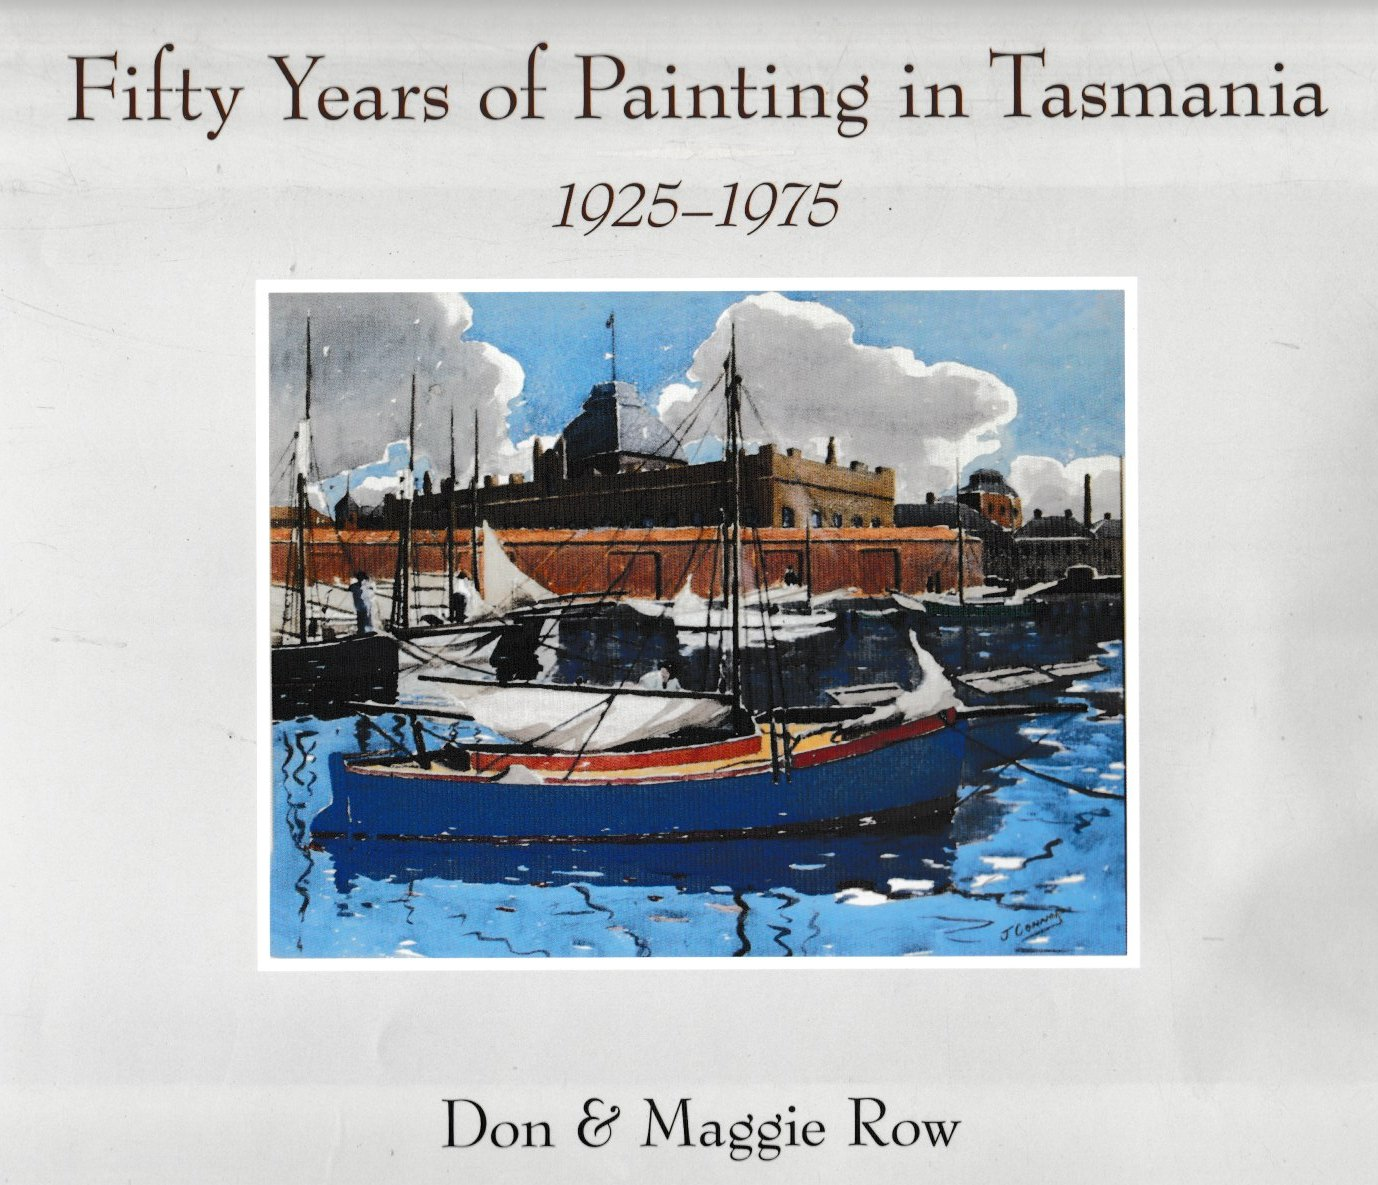 Fifty Years of Painting in Tasmania 1925-1975